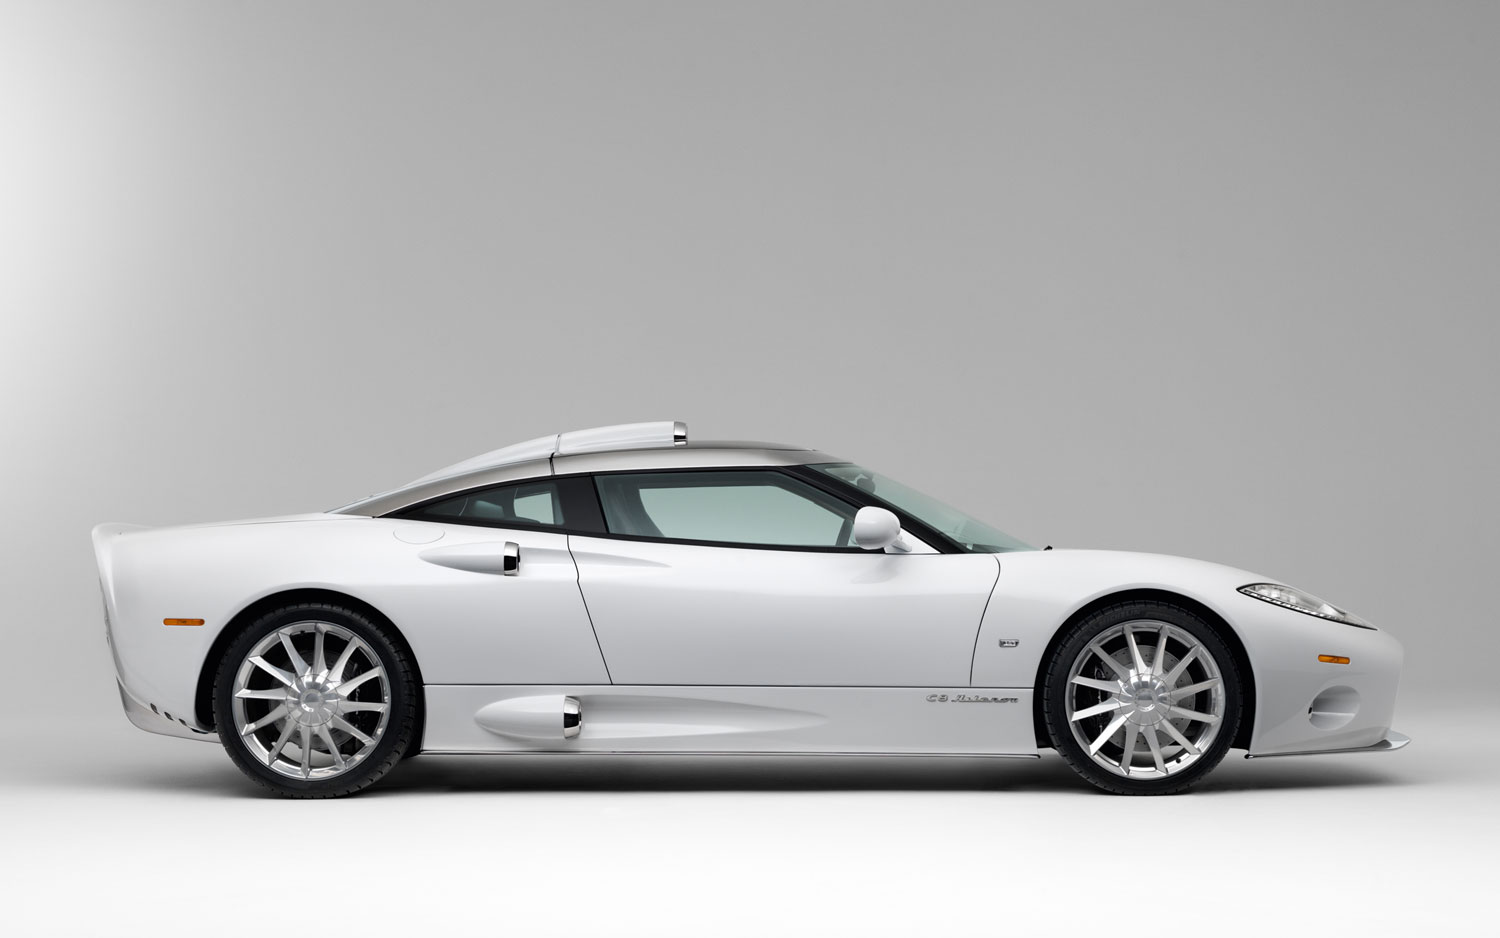 2019 Spyker C8 Aileron photo - 1